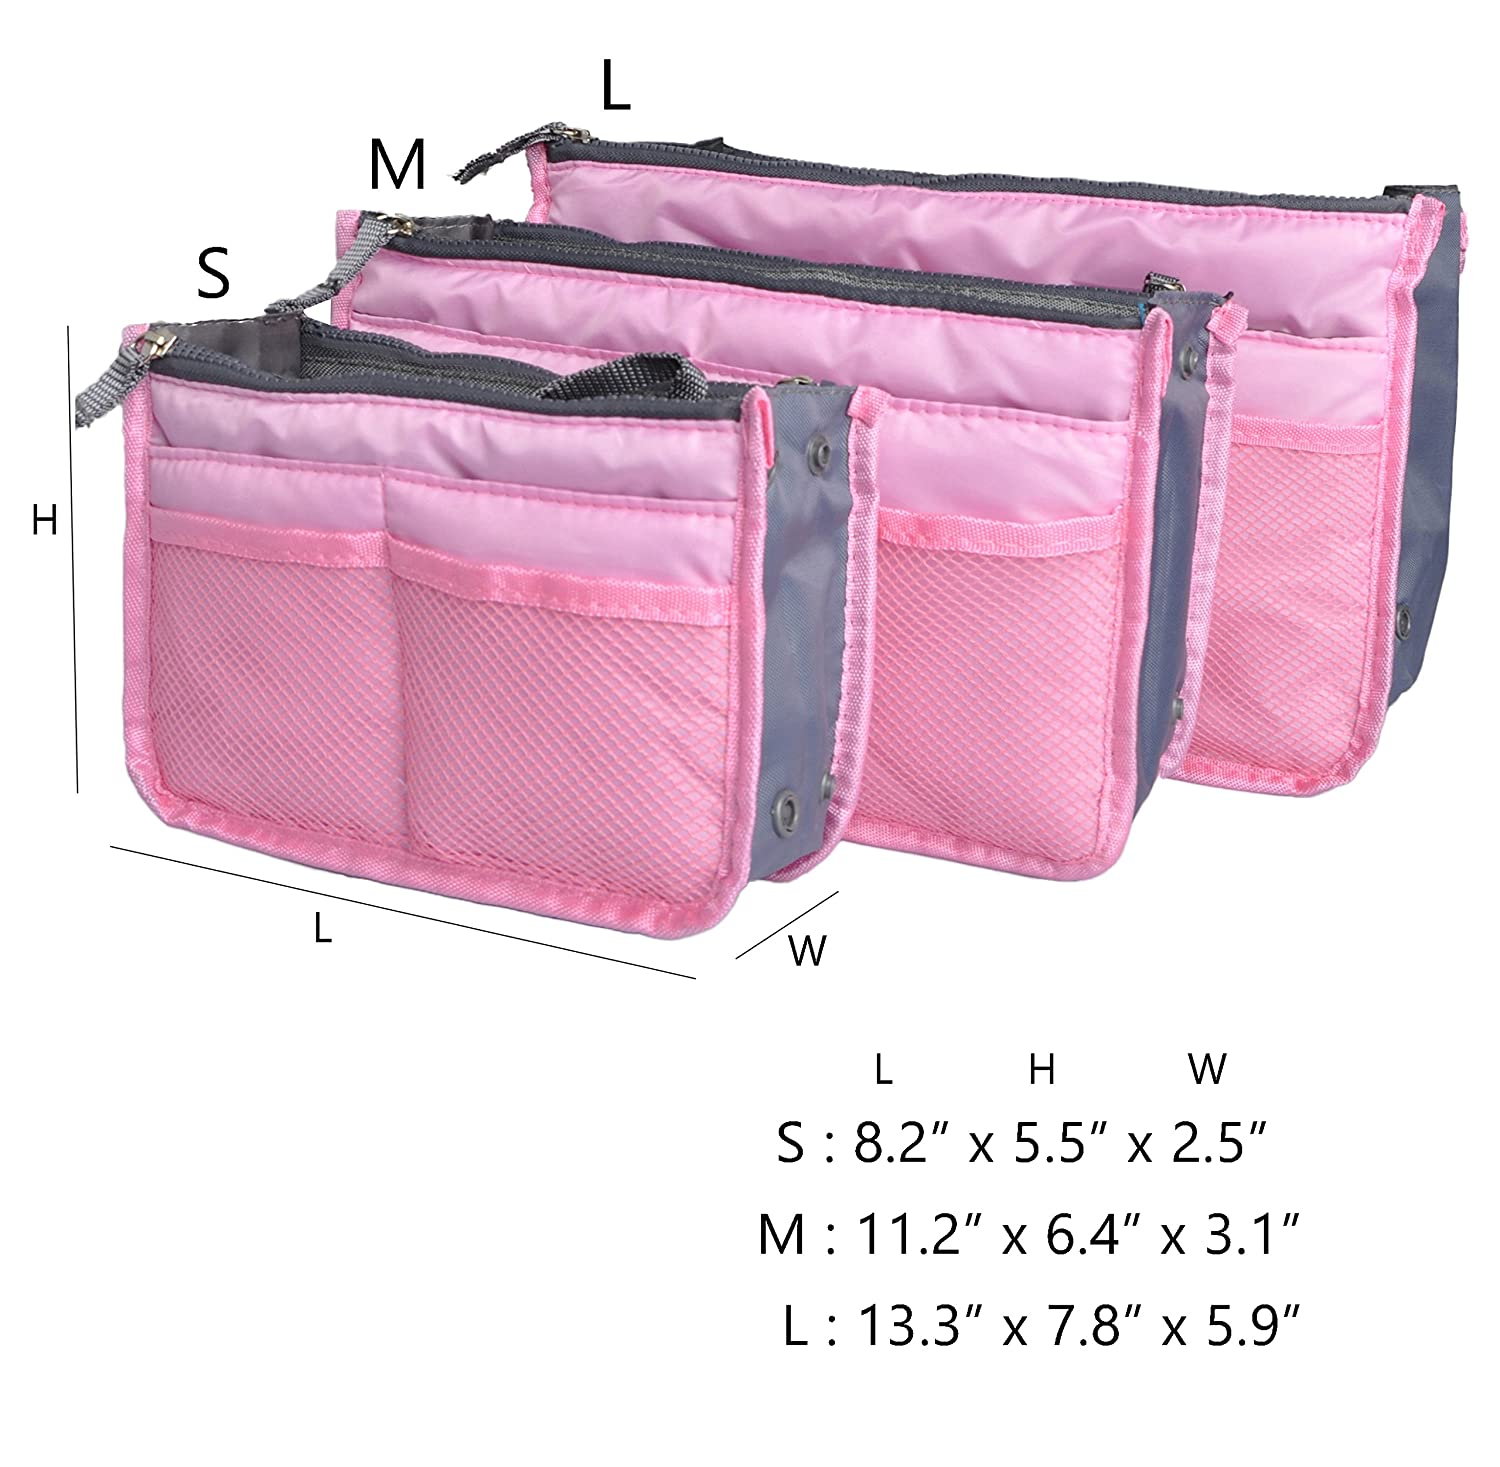 Vercord Purse Organizer,Insert Handbag Organizer Bag in Bag 13 Pockets 30 Colors 3 Size SWSNB-001new